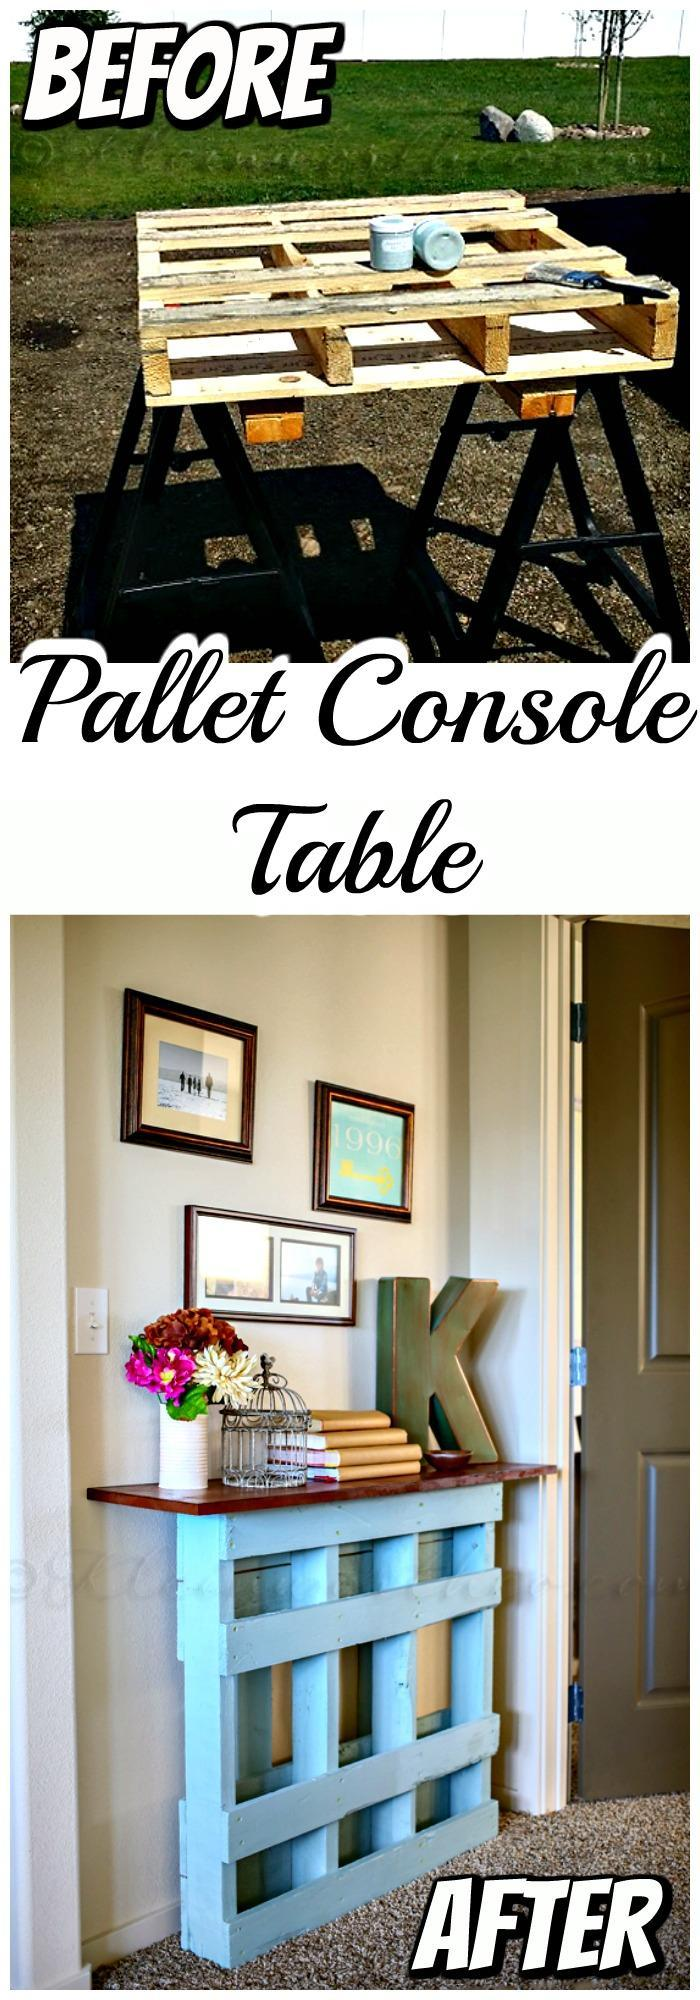 Pallet Console Table Project